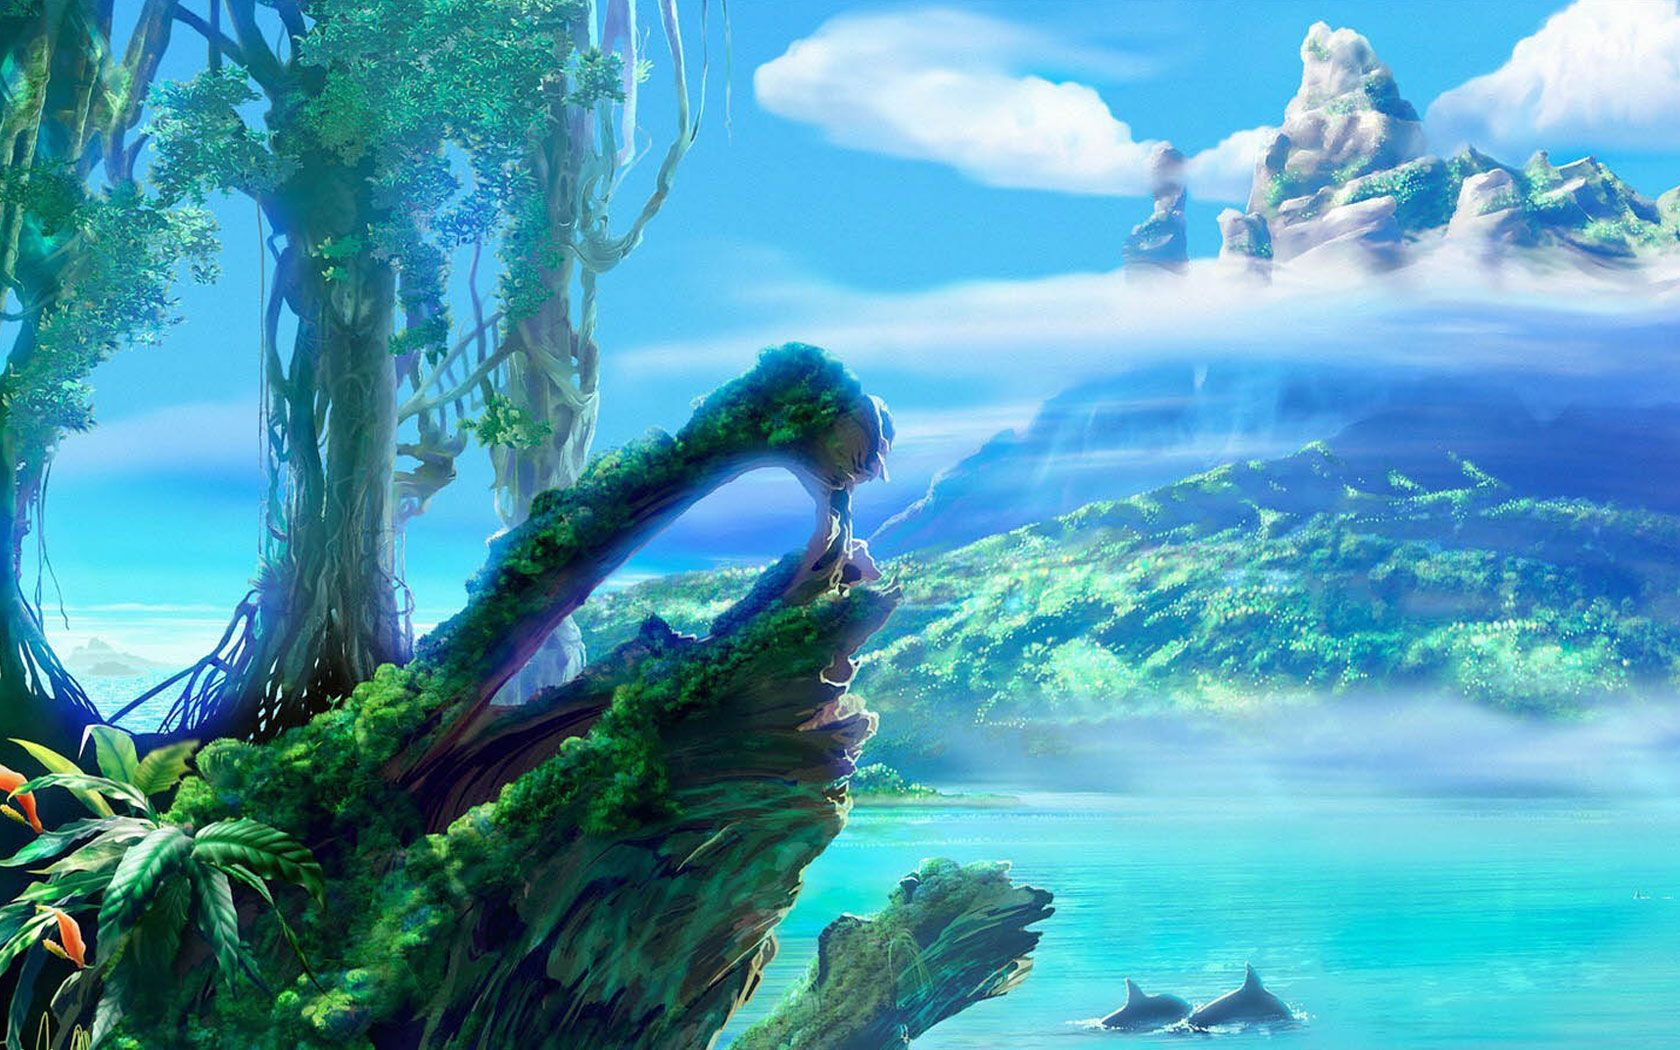 Anime Inspired Hd Fantasy Wallpapers For Your Collection: Anime Landscape - Google Search